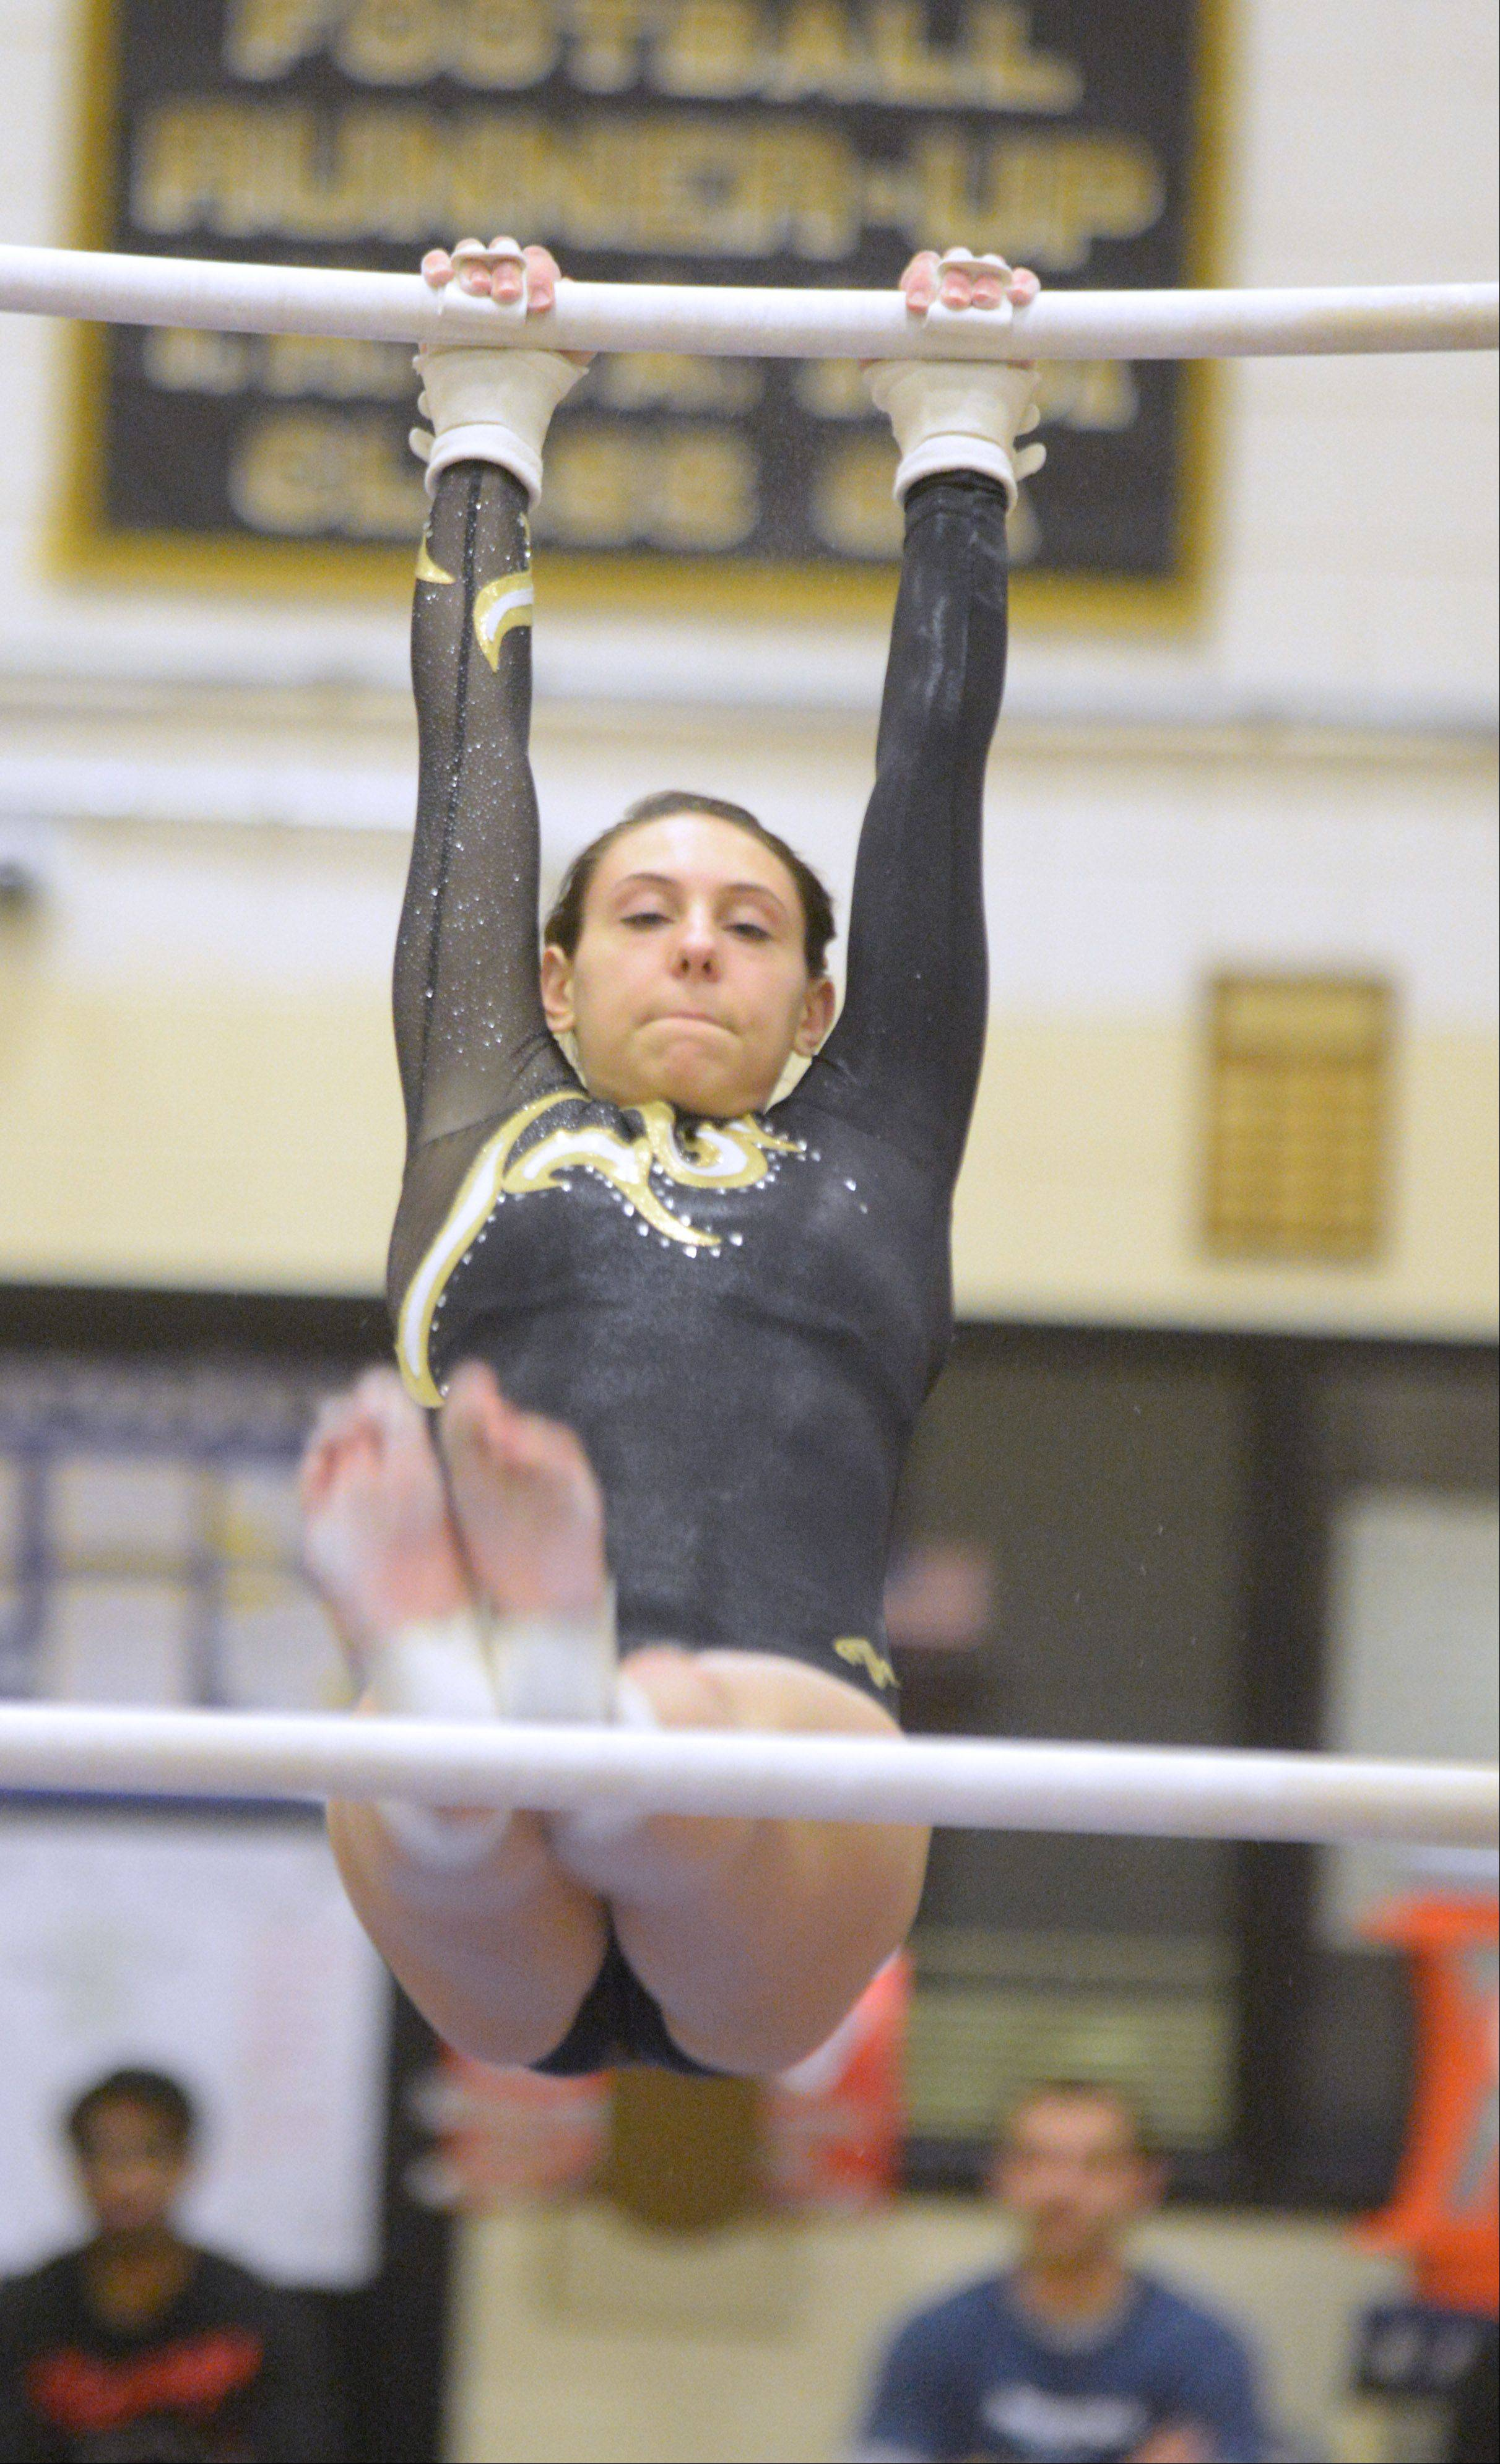 Mariah Matesi of Glenbard North one the bars during the Glenbard North girls gymnastics regional Wednesday in Carol Stream.